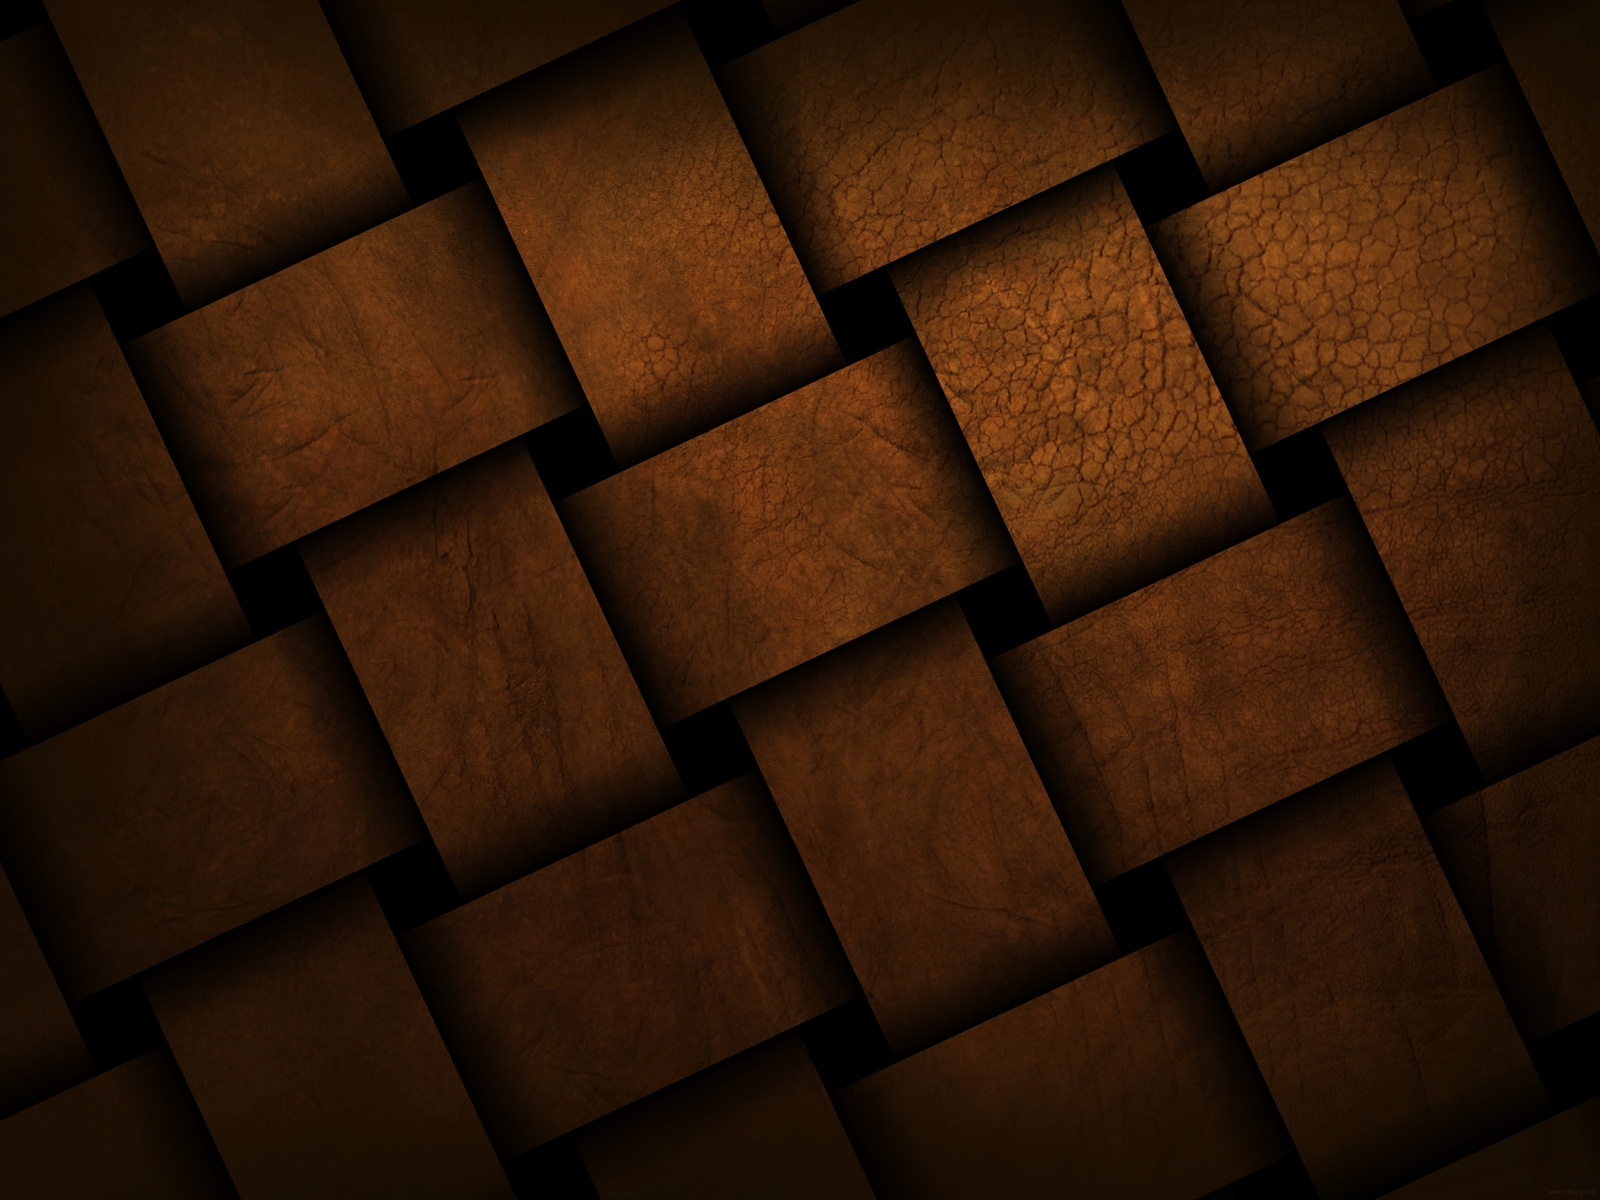 Background Kayu Warna Coklat Wallpaper Hp Warna Coklat Mywallpapers Site